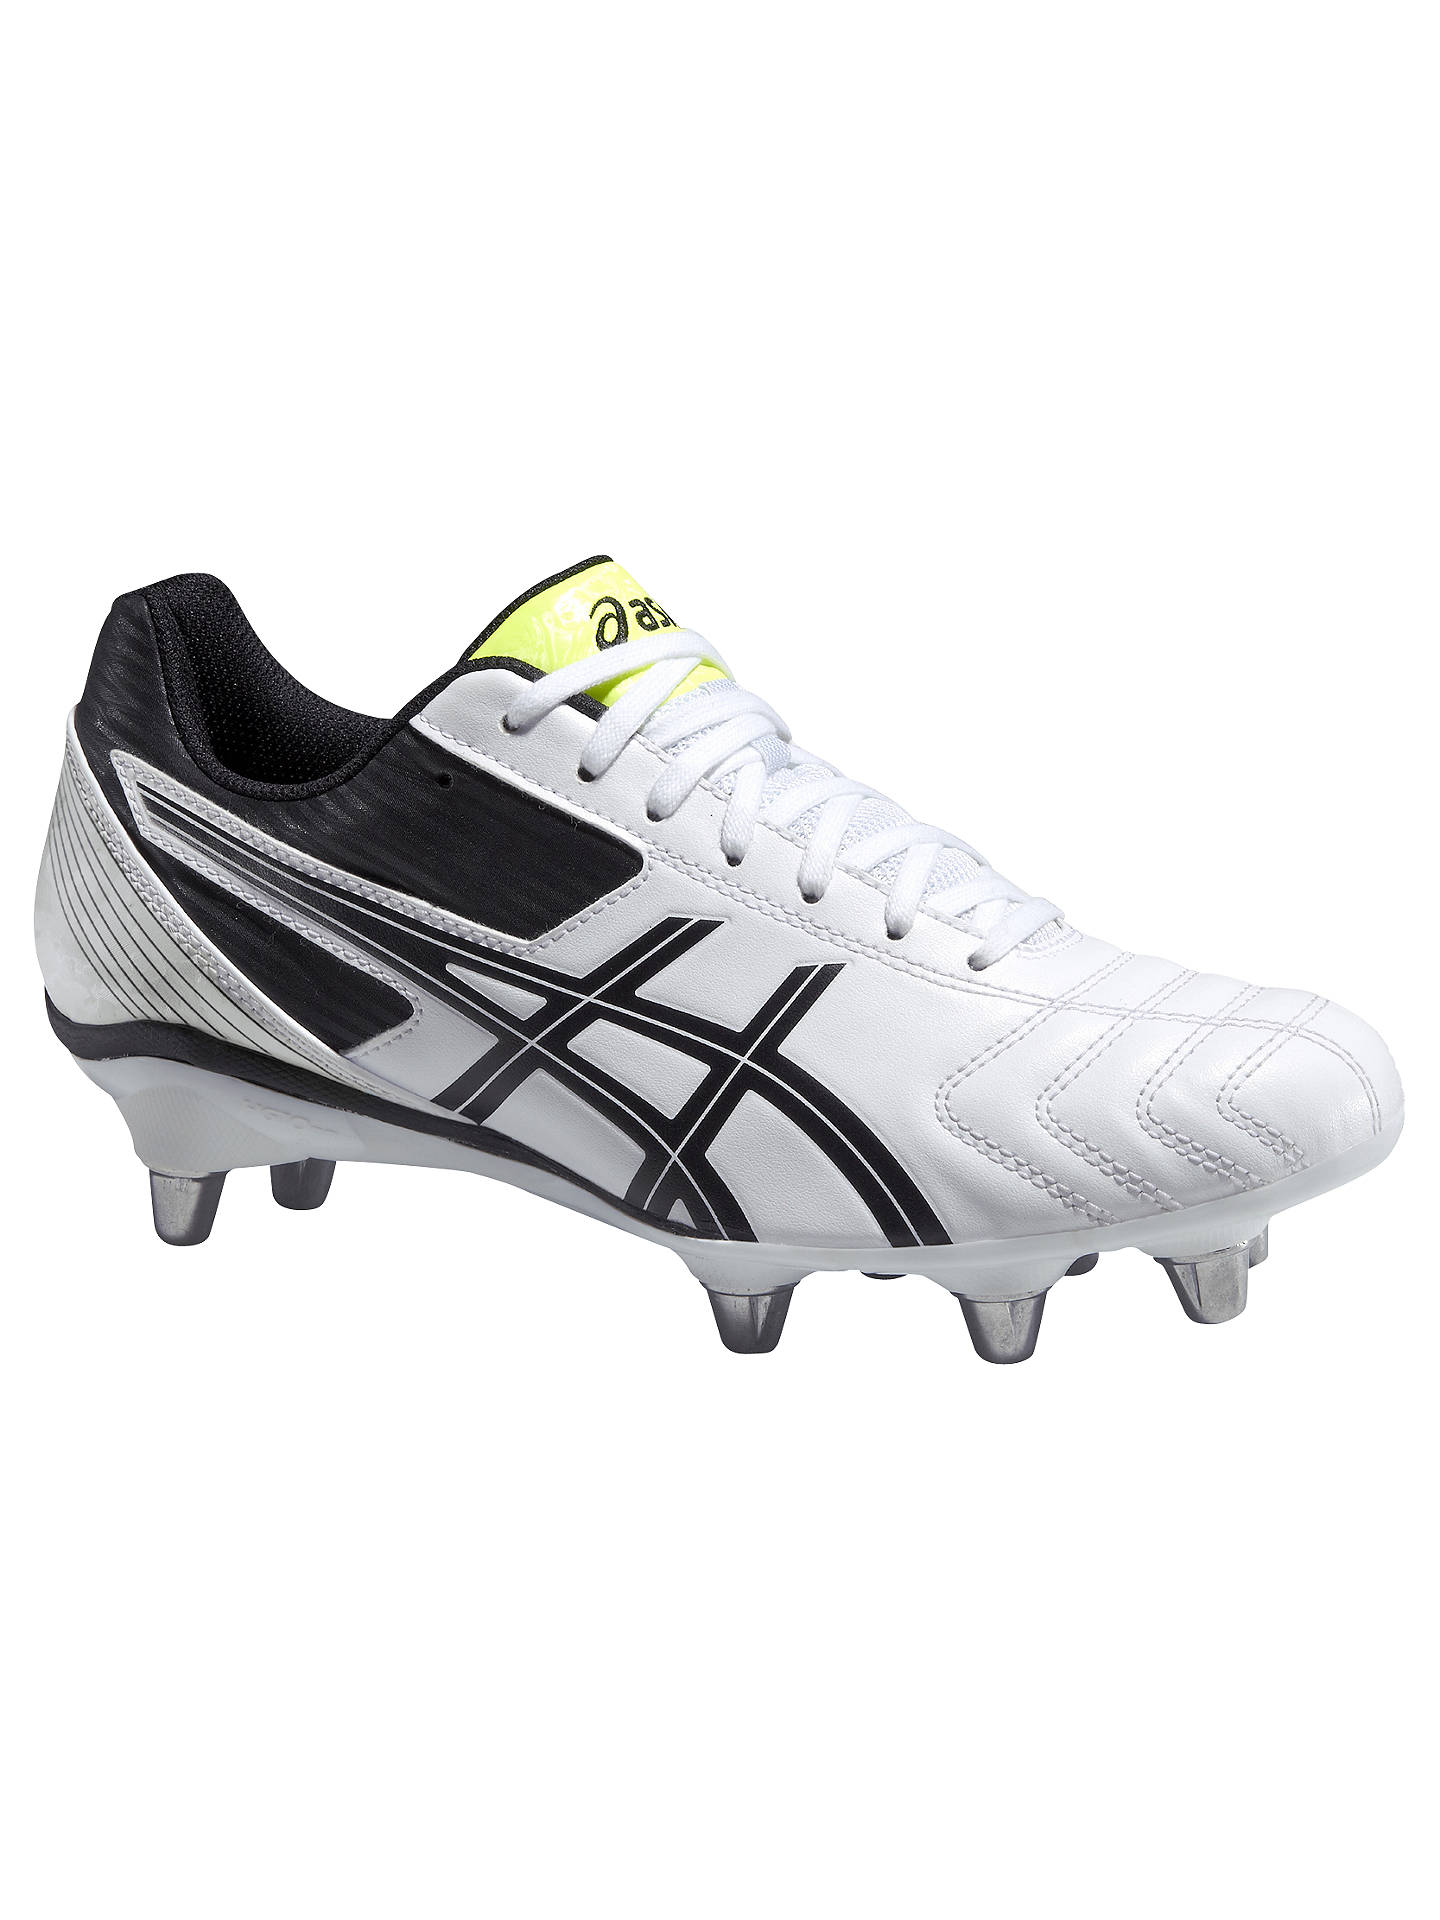 6a7db1580fb3ec Buy Asics Lethal Tackle Men's Rugby Boots, White/Black, 9 Online at  johnlewis ...